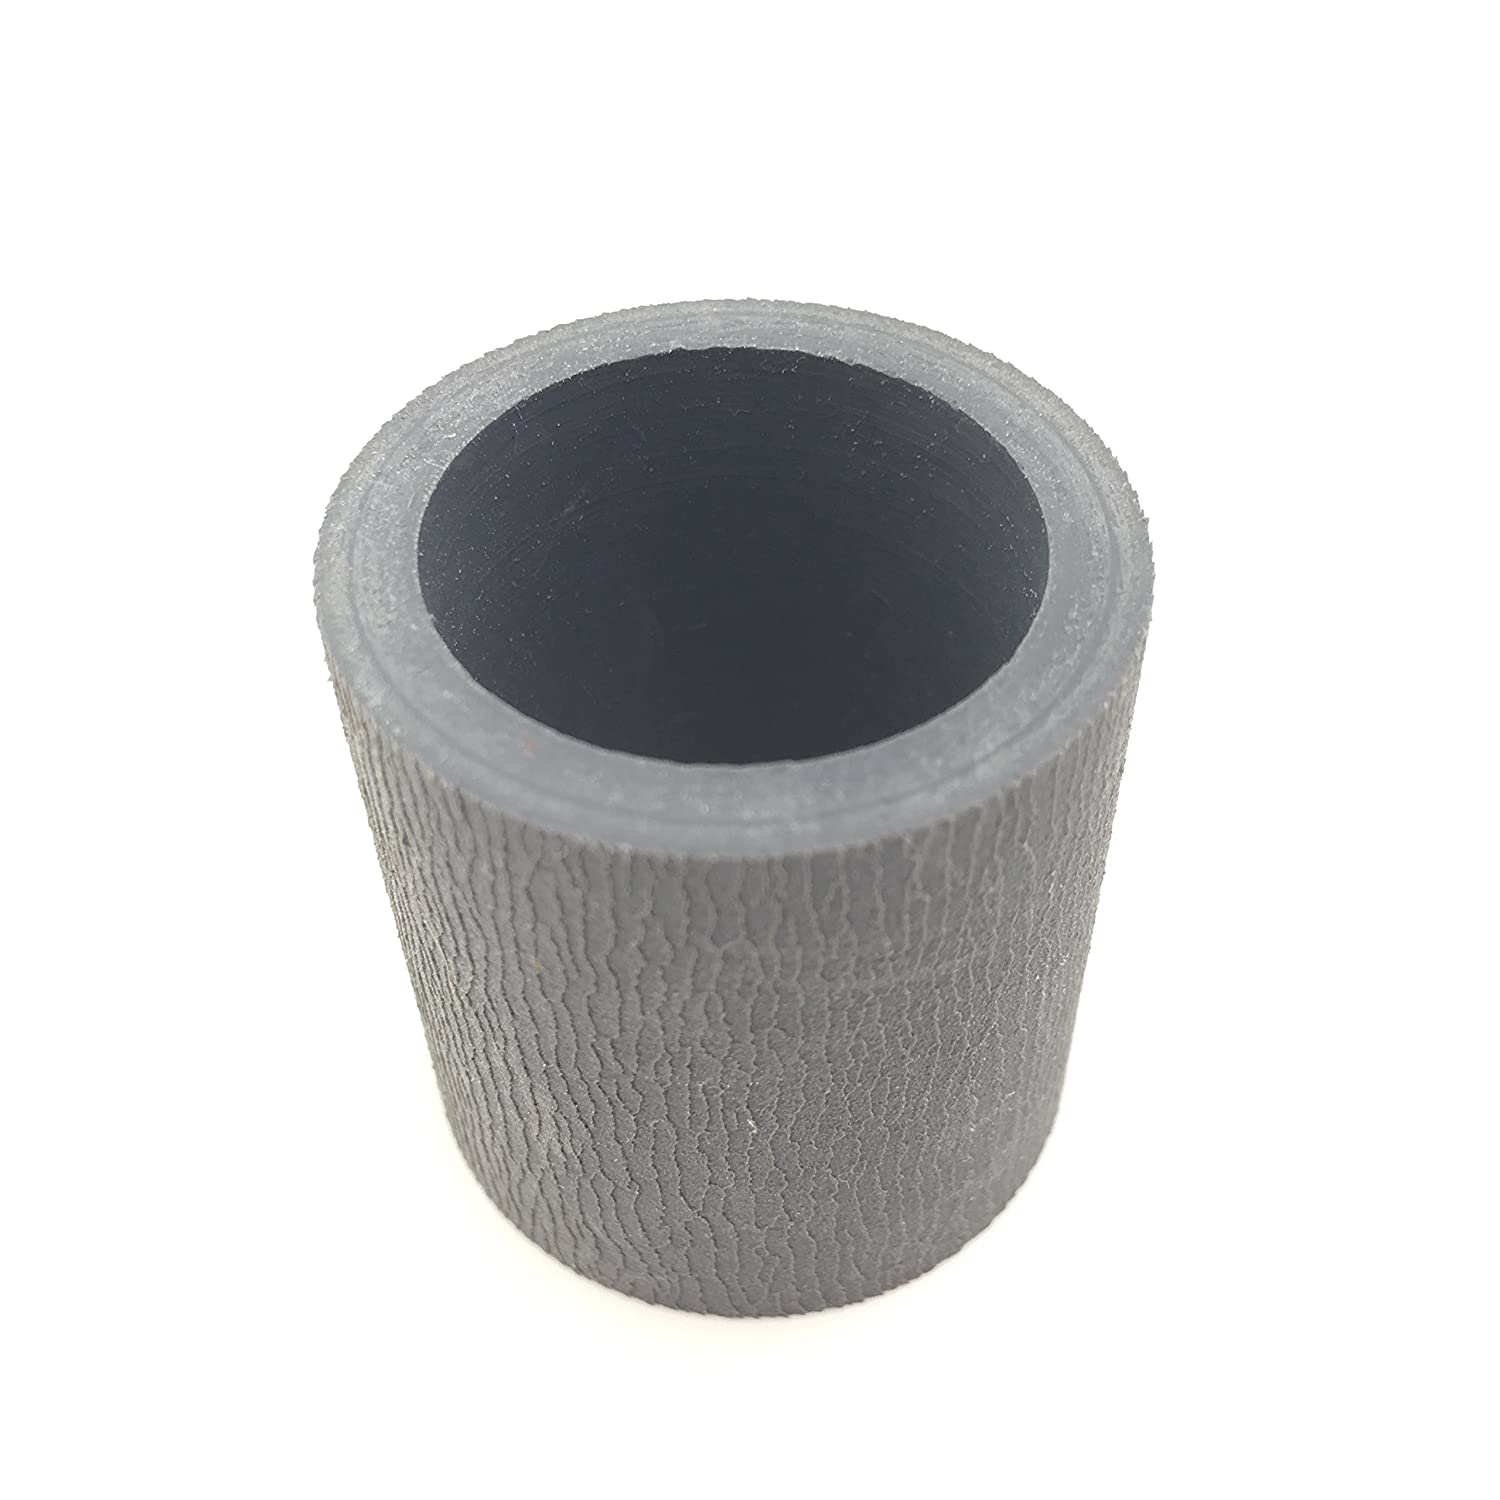 OKLILI PURA0001 LD6187001 Paper Pickup Separation Roller Tire Rubber Compatible with Brother ADS-2000W ADS-2100W ADS-2500W ADS-2600W